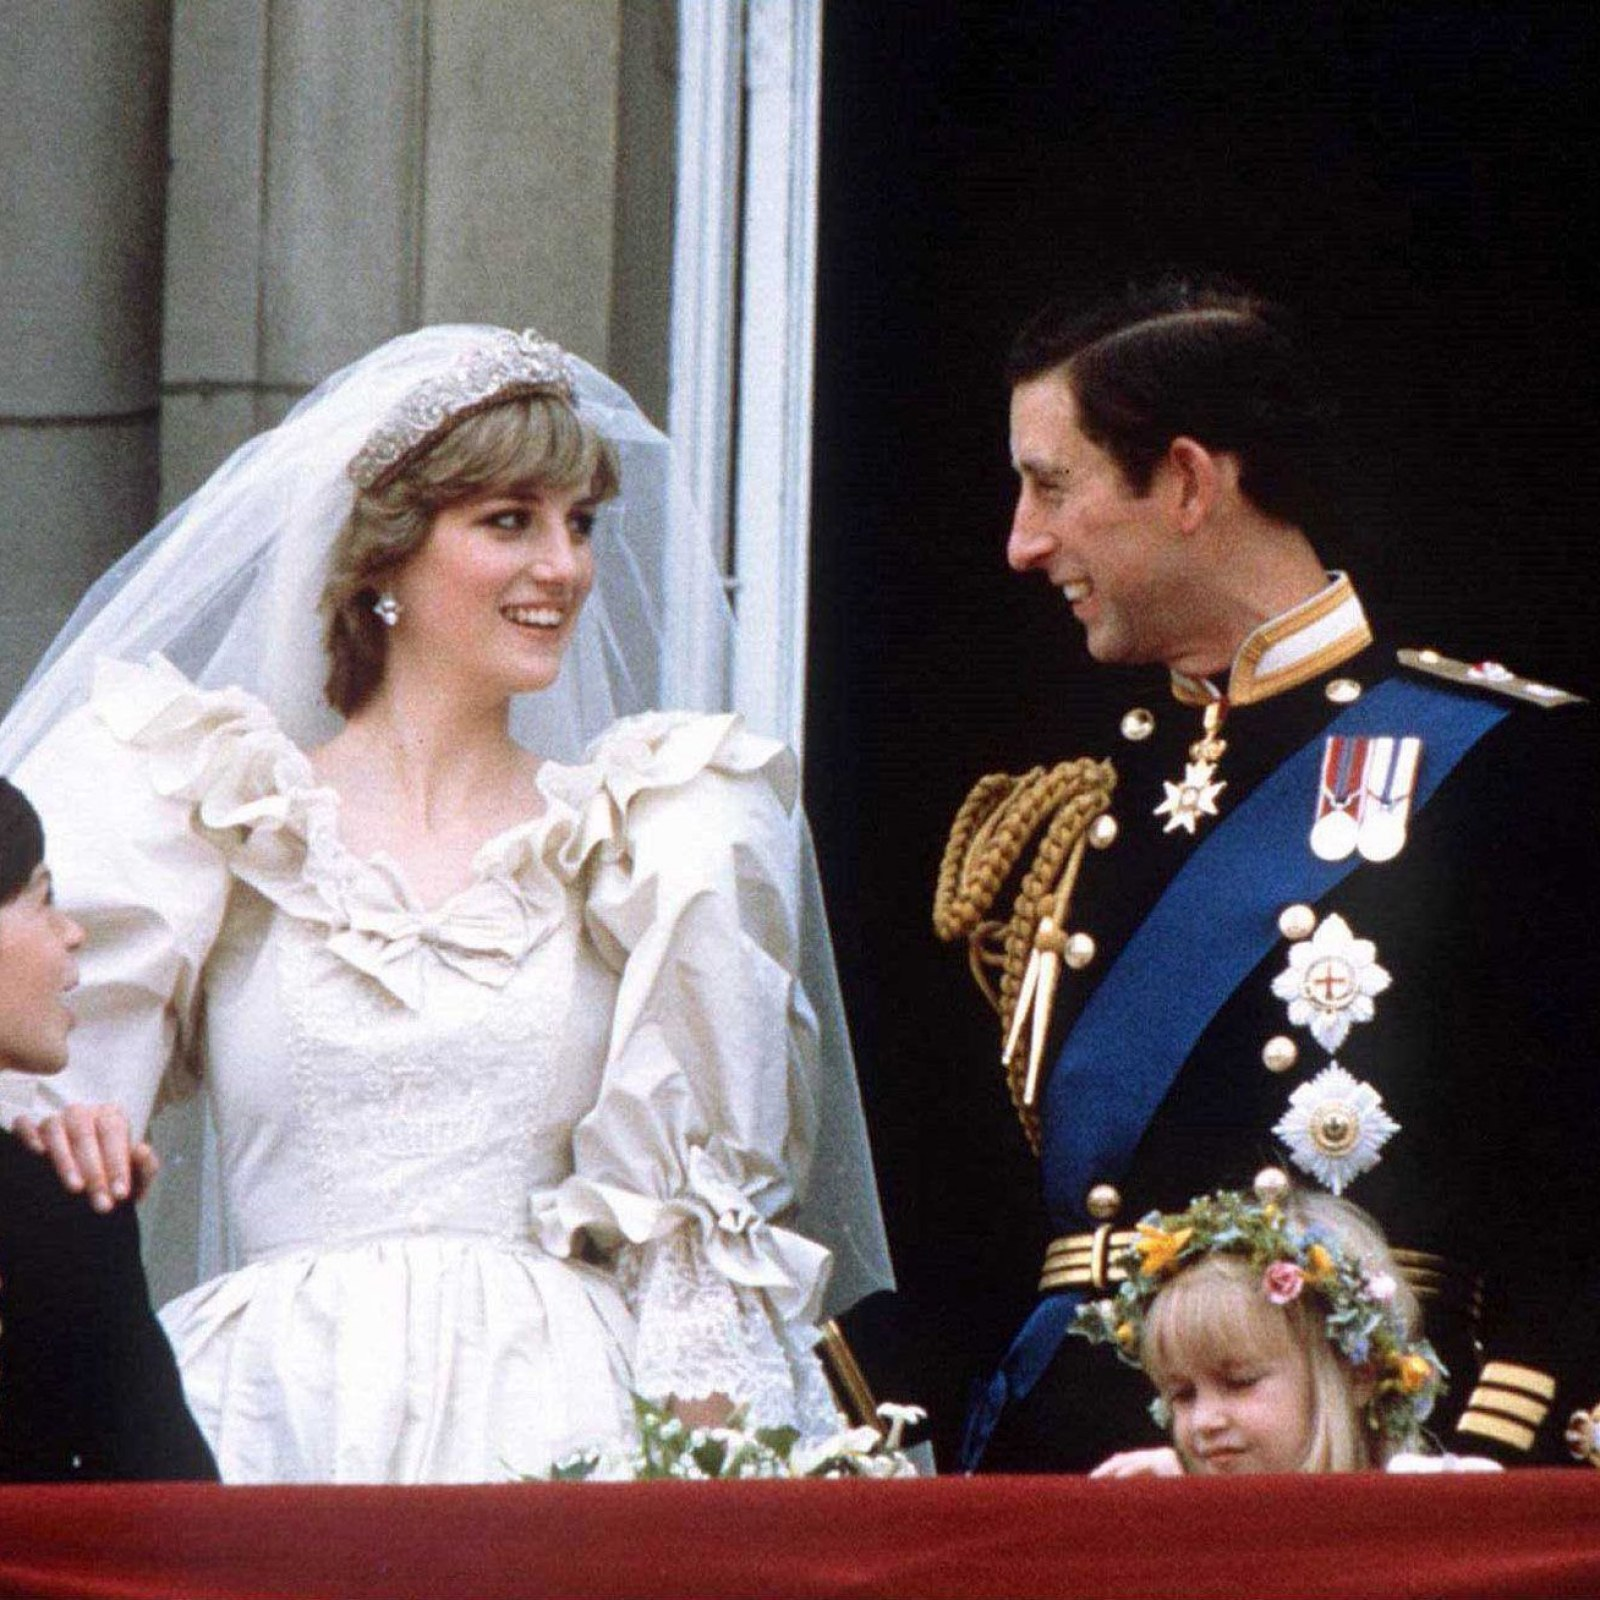 Charles And Diana Wedding.Why Princess Diana And Prince Charles Divorced Camilla Parker